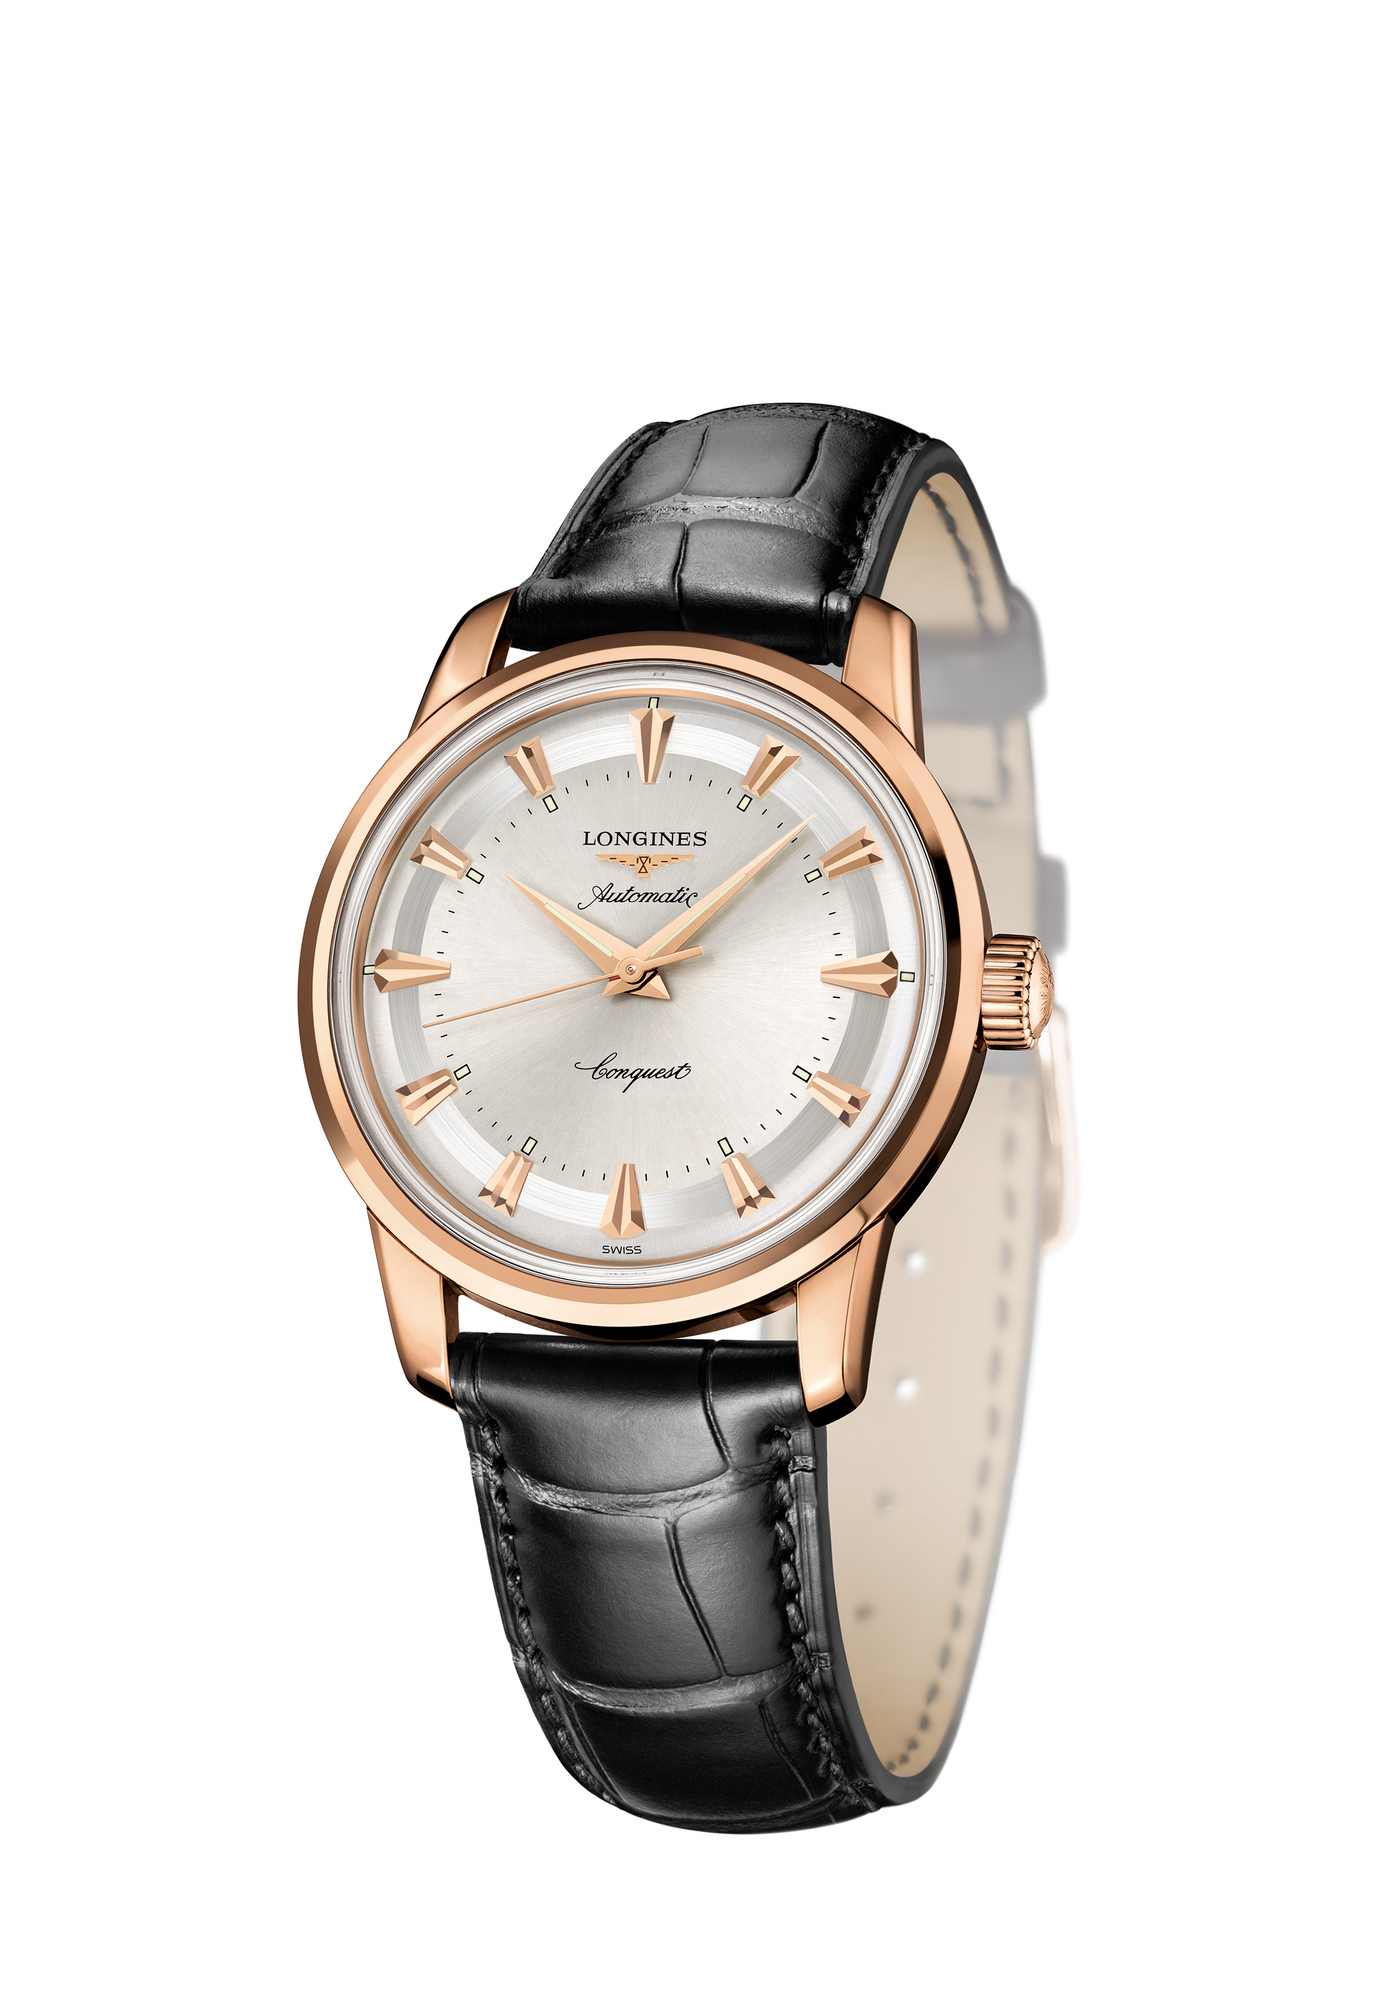 Longines Conquest Heritage 1954-2014 Watch 9